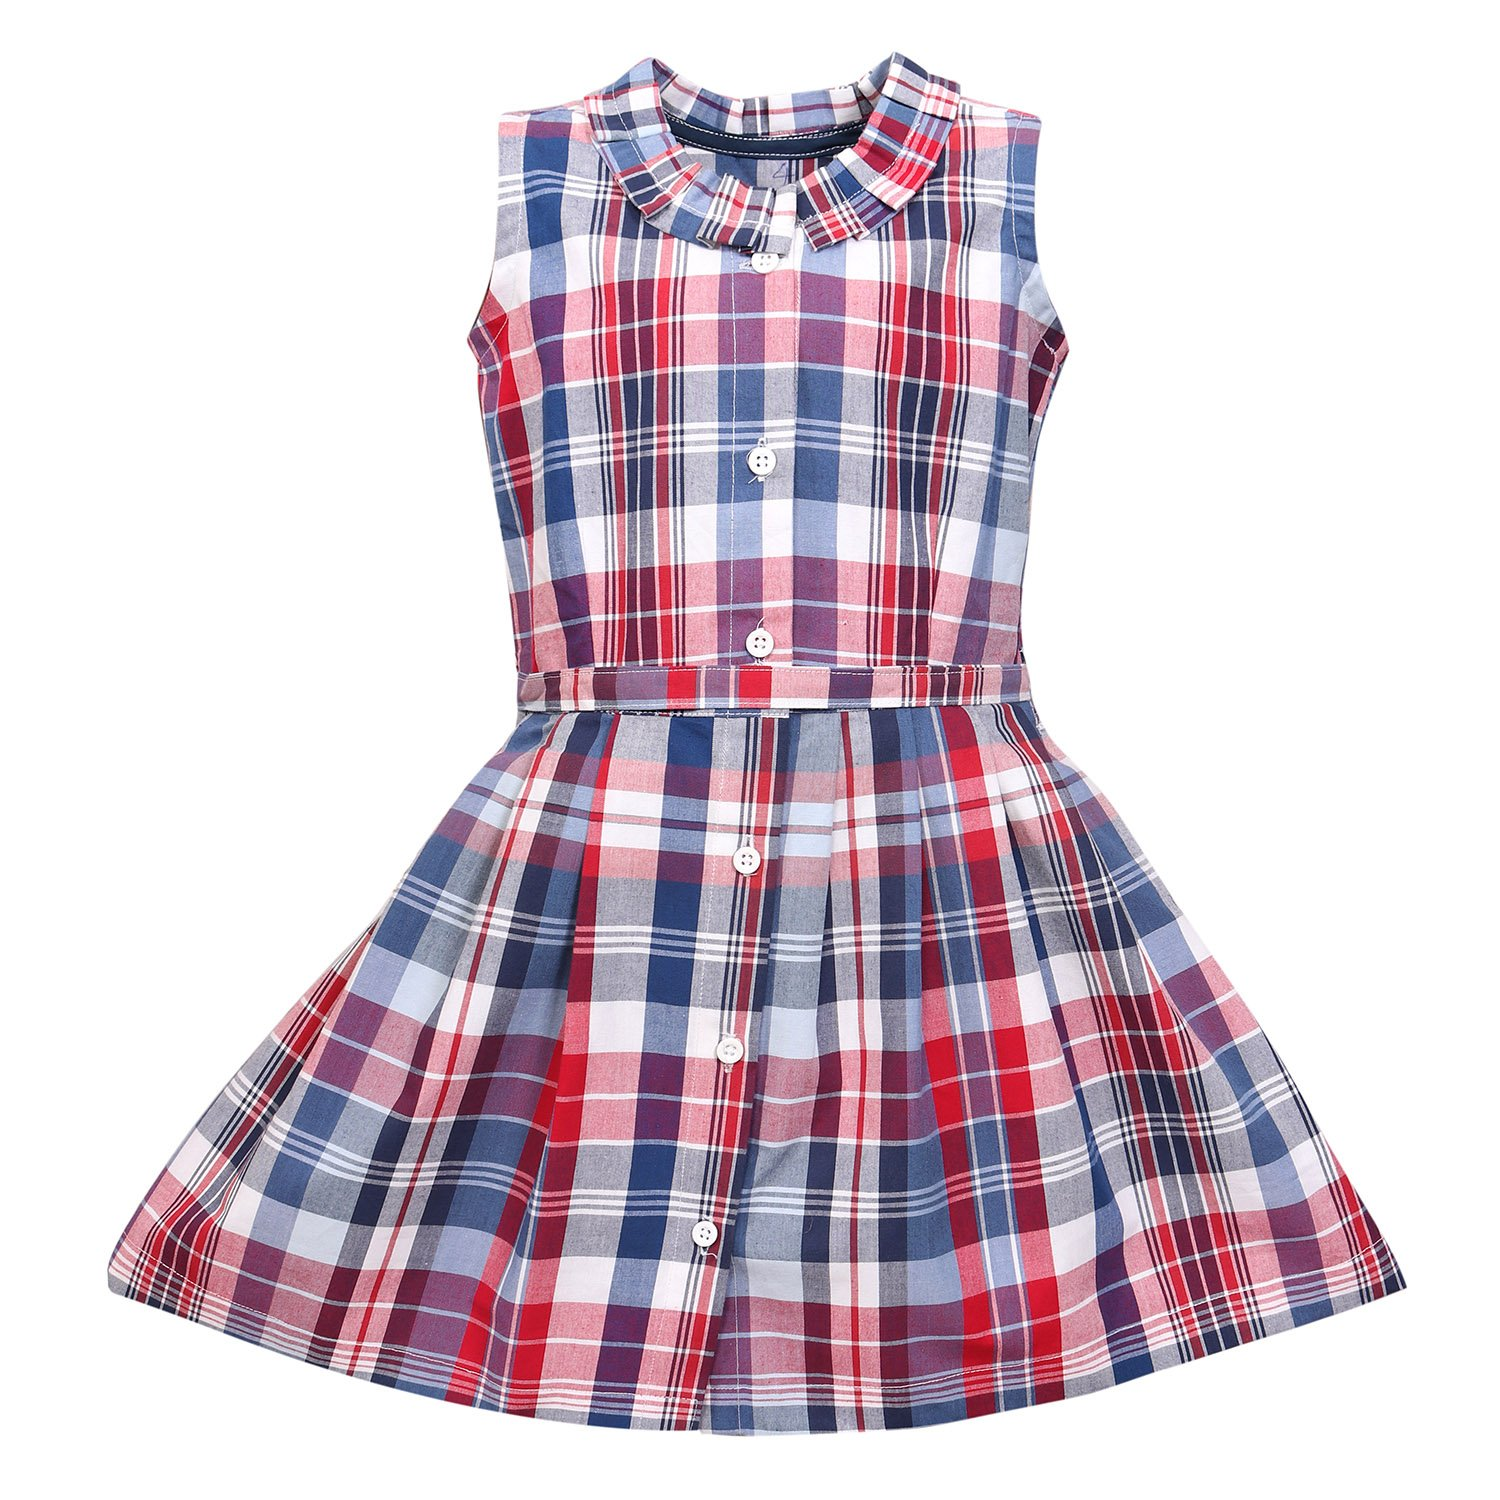 a90b83215 Champa Girls Kids Multi-Colored Checked Cotton Partywear Casual ...